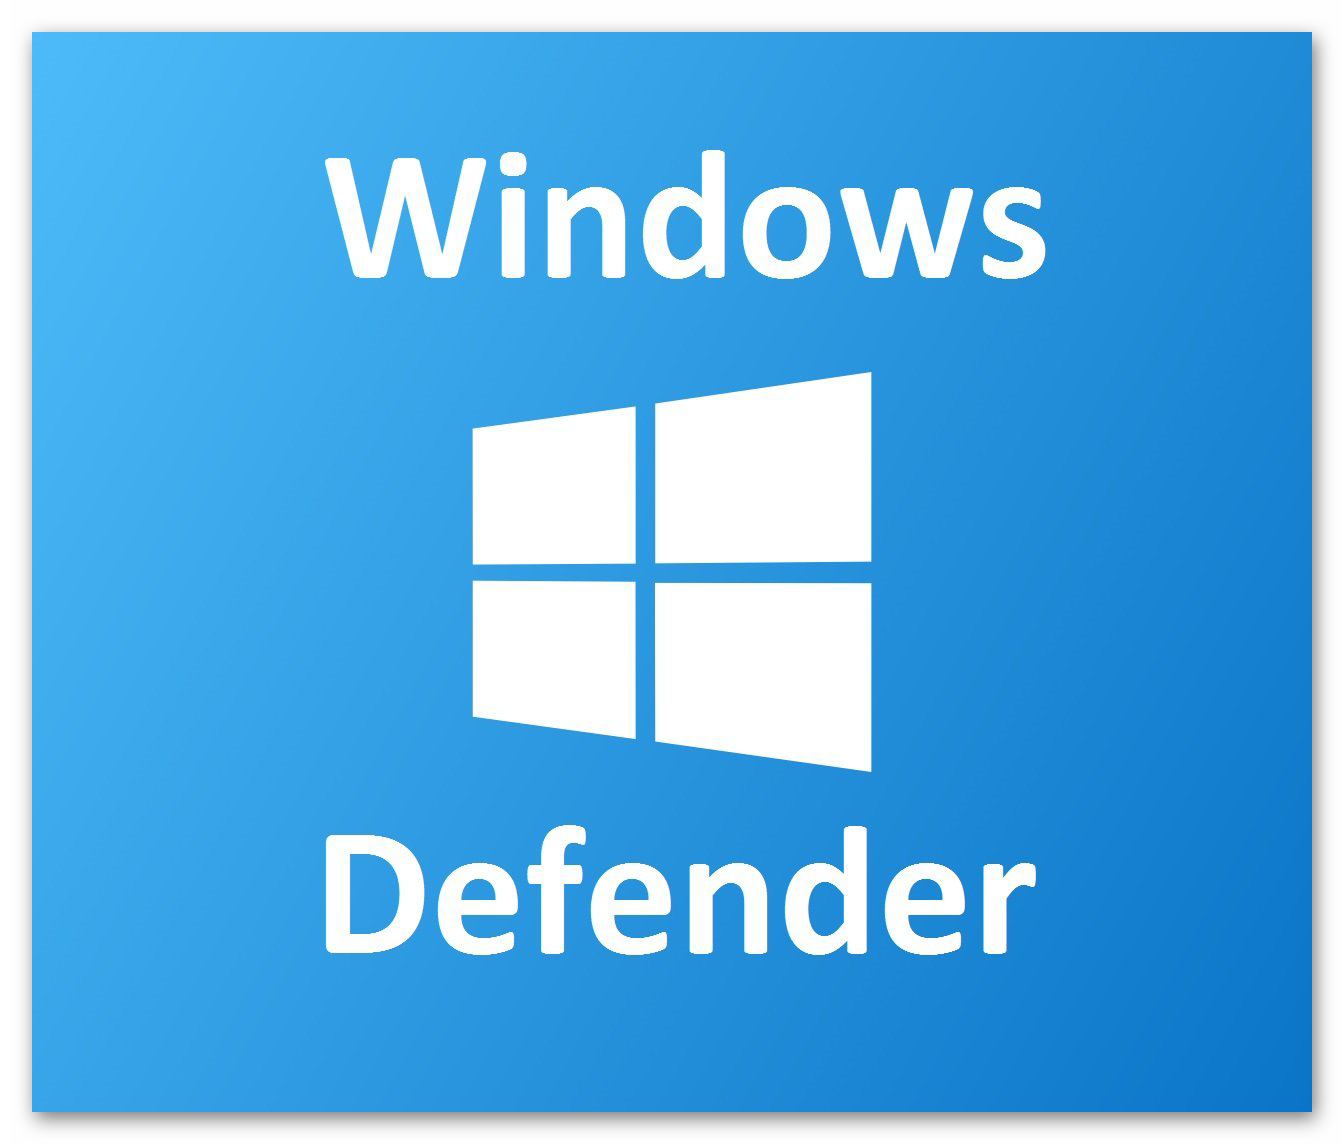 Картинка Windows Defender